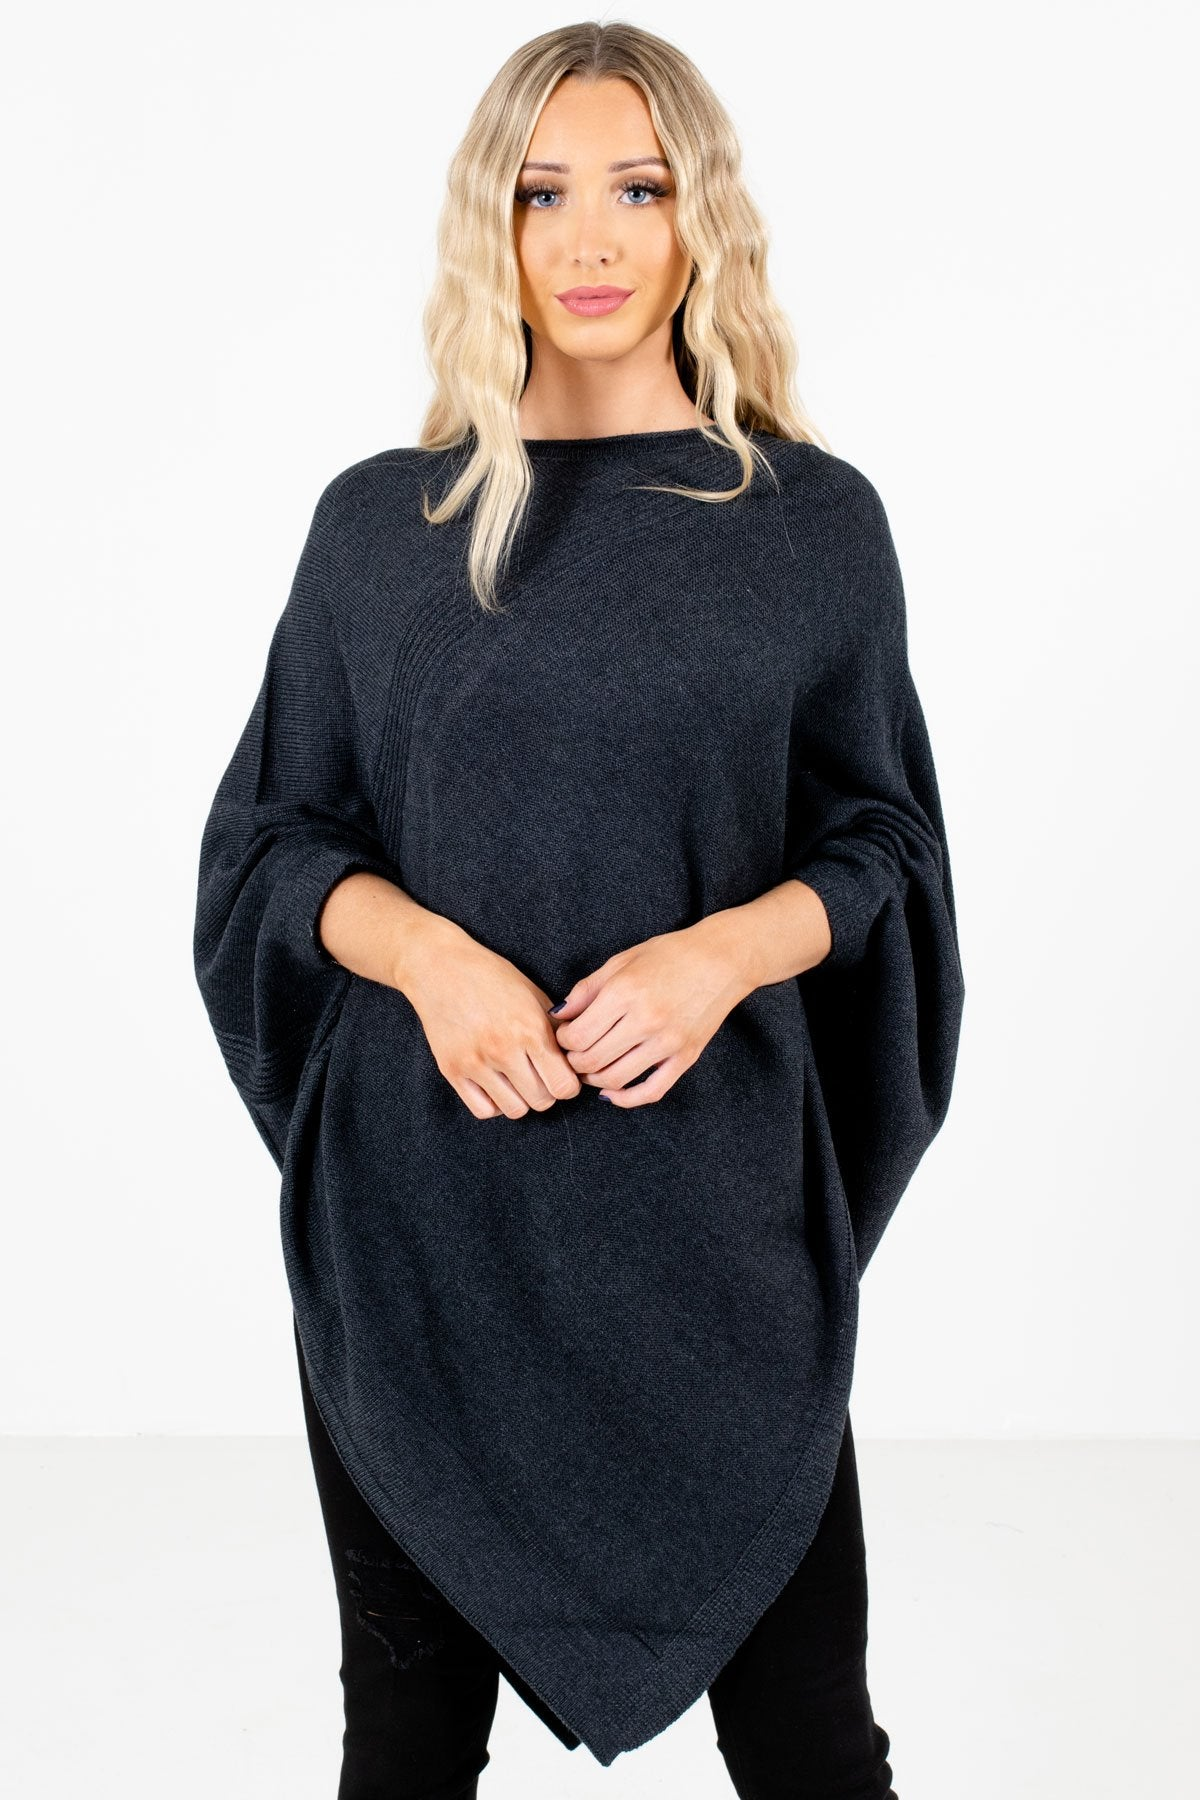 Charcoal Gray High-Quality Knit Material Boutique Ponchos for Women